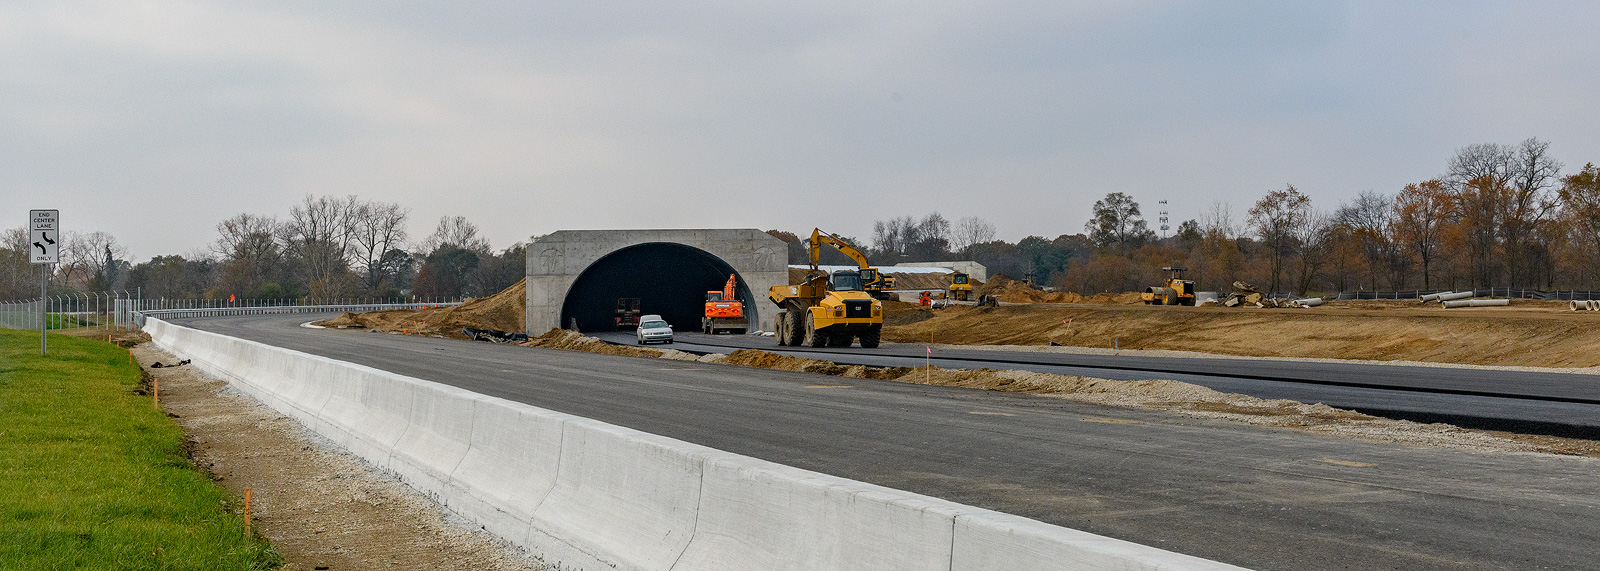 The test track at the American Center For Mobility under construction